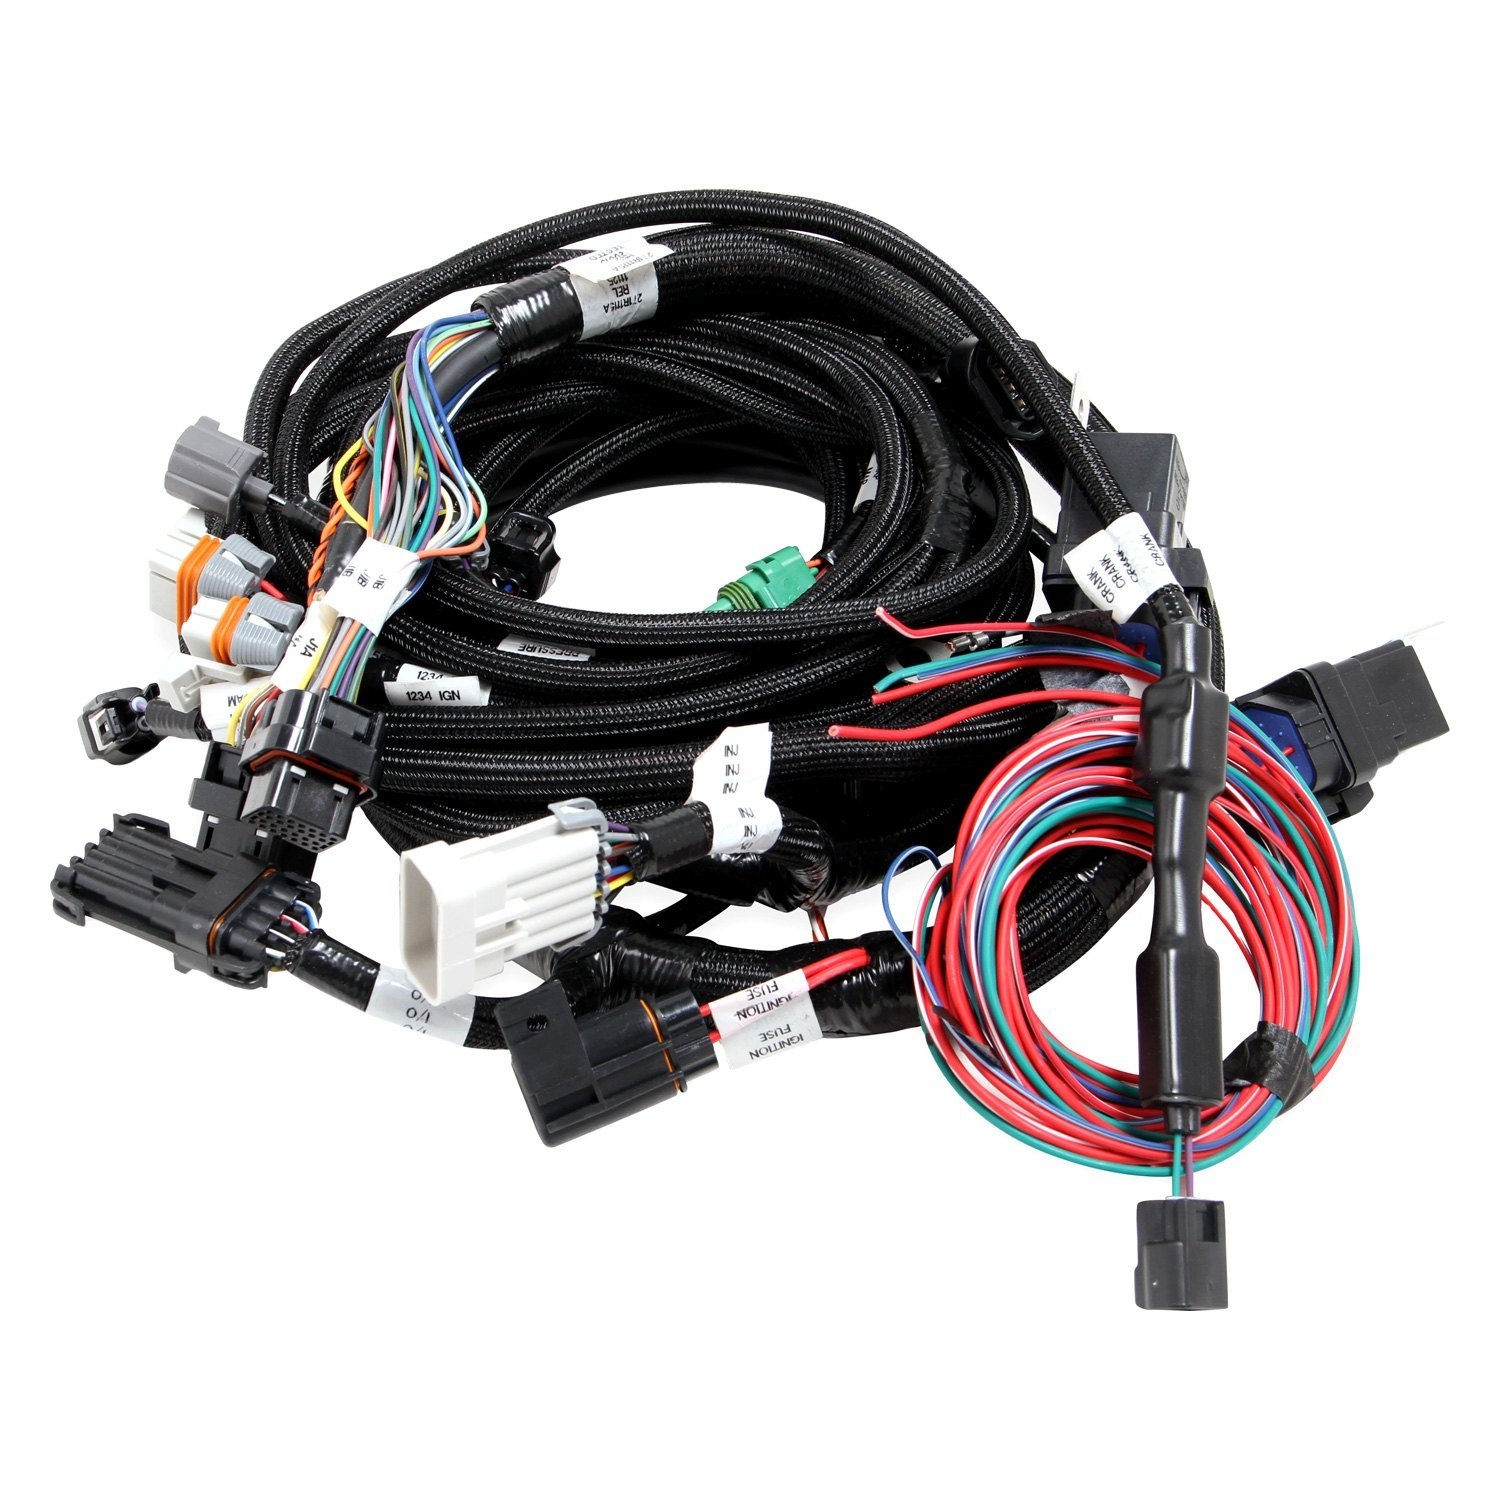 Holley Ford Mustang 2001 Dominator Efi Harness Kit Picing Wiring Kits Main For Smart Coils